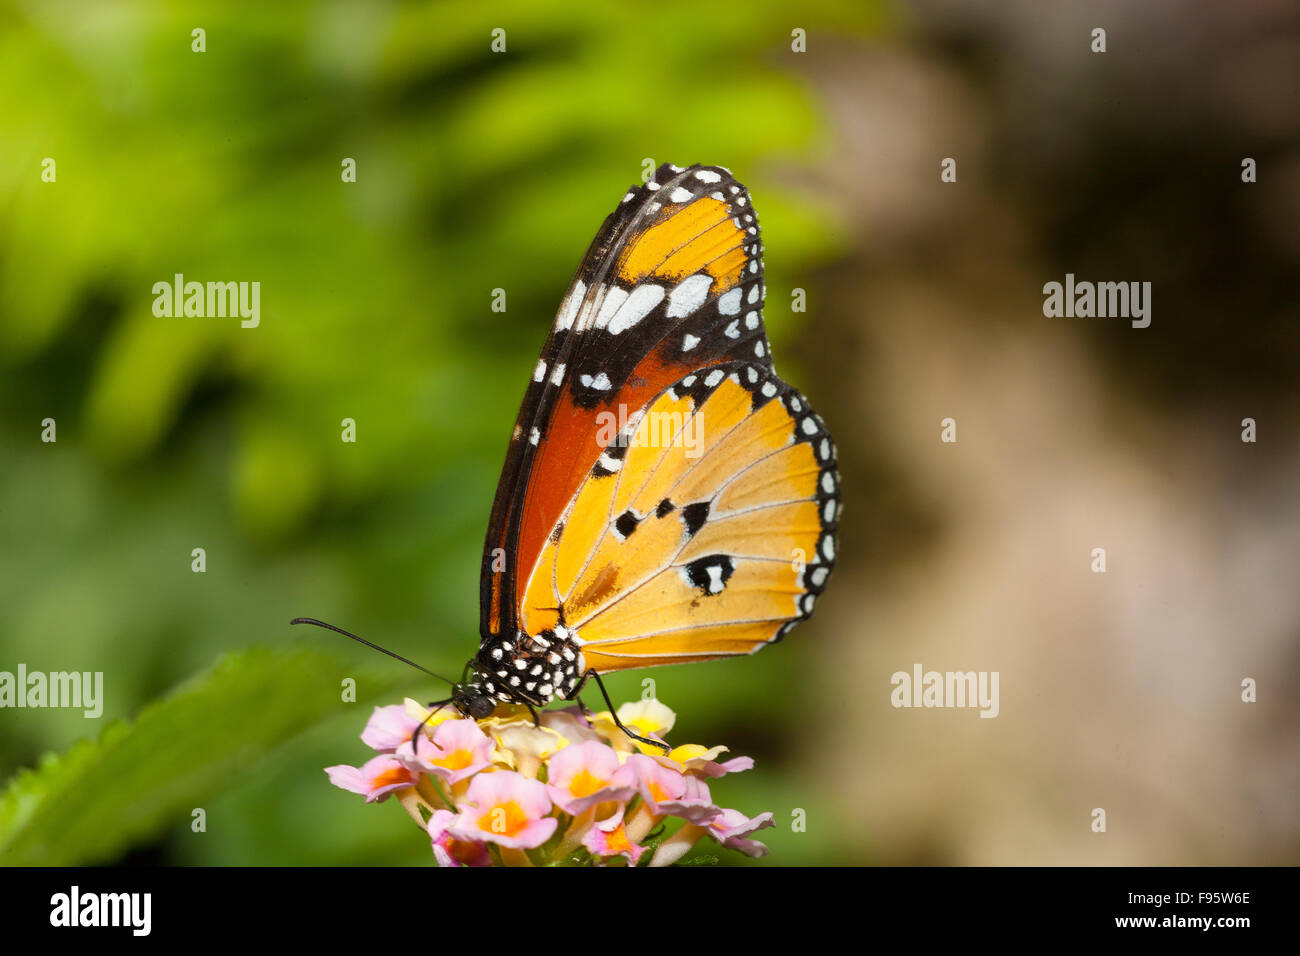 Mimic Butterfly, (Danaus chrysippus) Male, ventral view - Stock Image